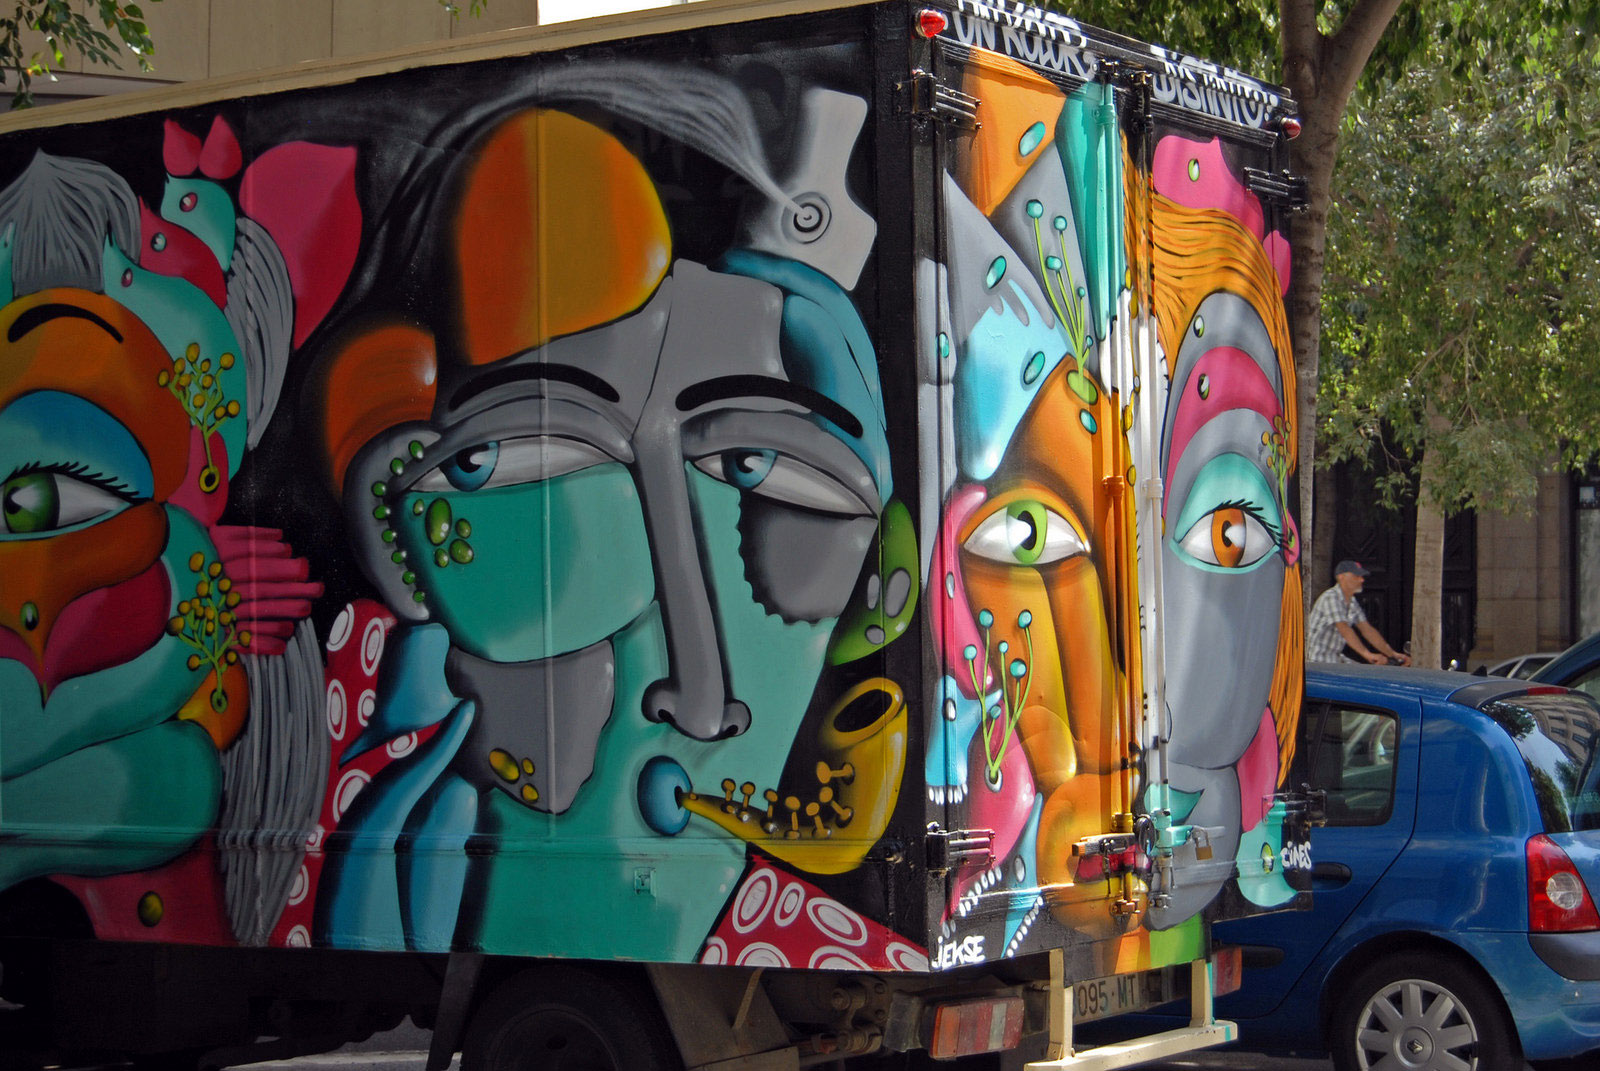 sax truck, cube van painted in graffiti style, saxophone player, Spain,